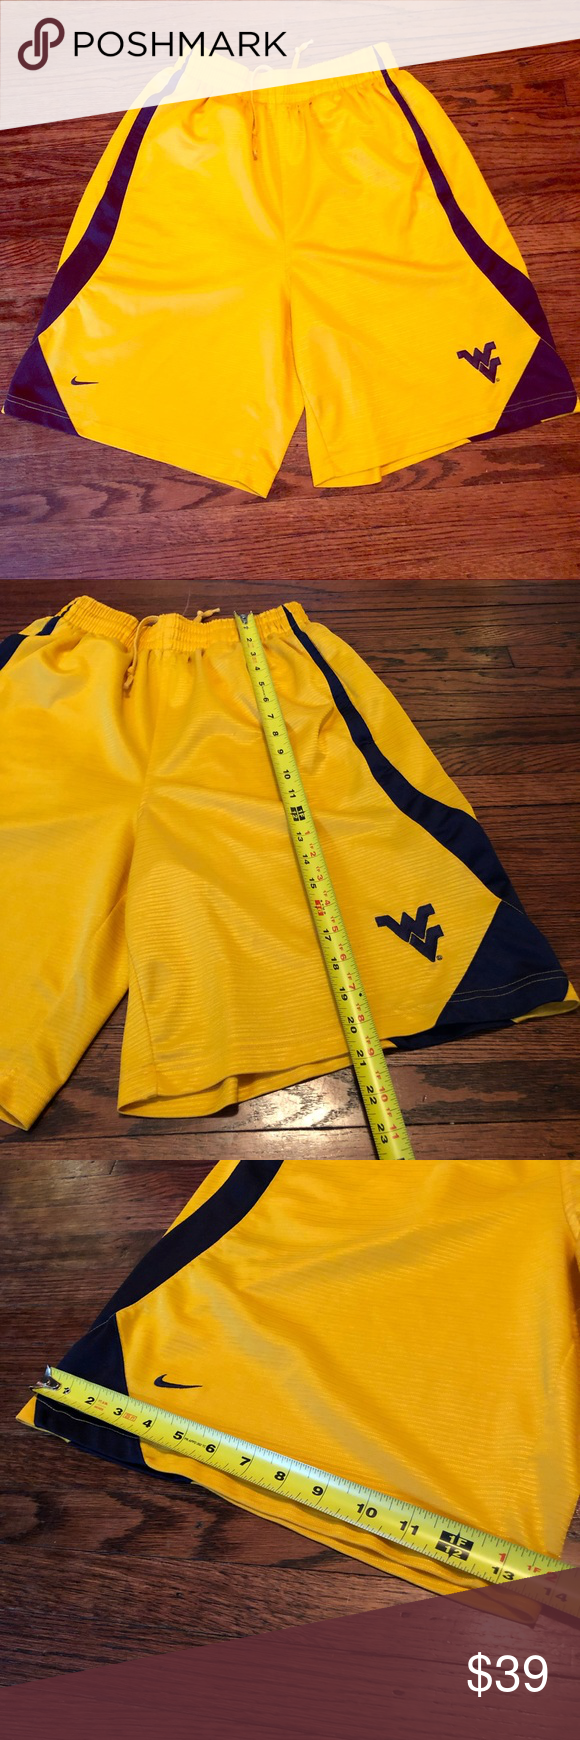 rare NIKE TEAM WVU Mountaineers BASKETBALL SHORTS rare NIKE TEAM West Virginia MountaineersBASKETBALL SHORTS  Color: Old Gold  Size: Men's Small - See photos for measurements  Basketball Shorts. Loose/Baggy Fit. Elastic & drawstring. Embroidered Logos.  Great used condition. Very minor wear shown.  100% Polyester. Nike Shorts Athletic #wvumountaineers